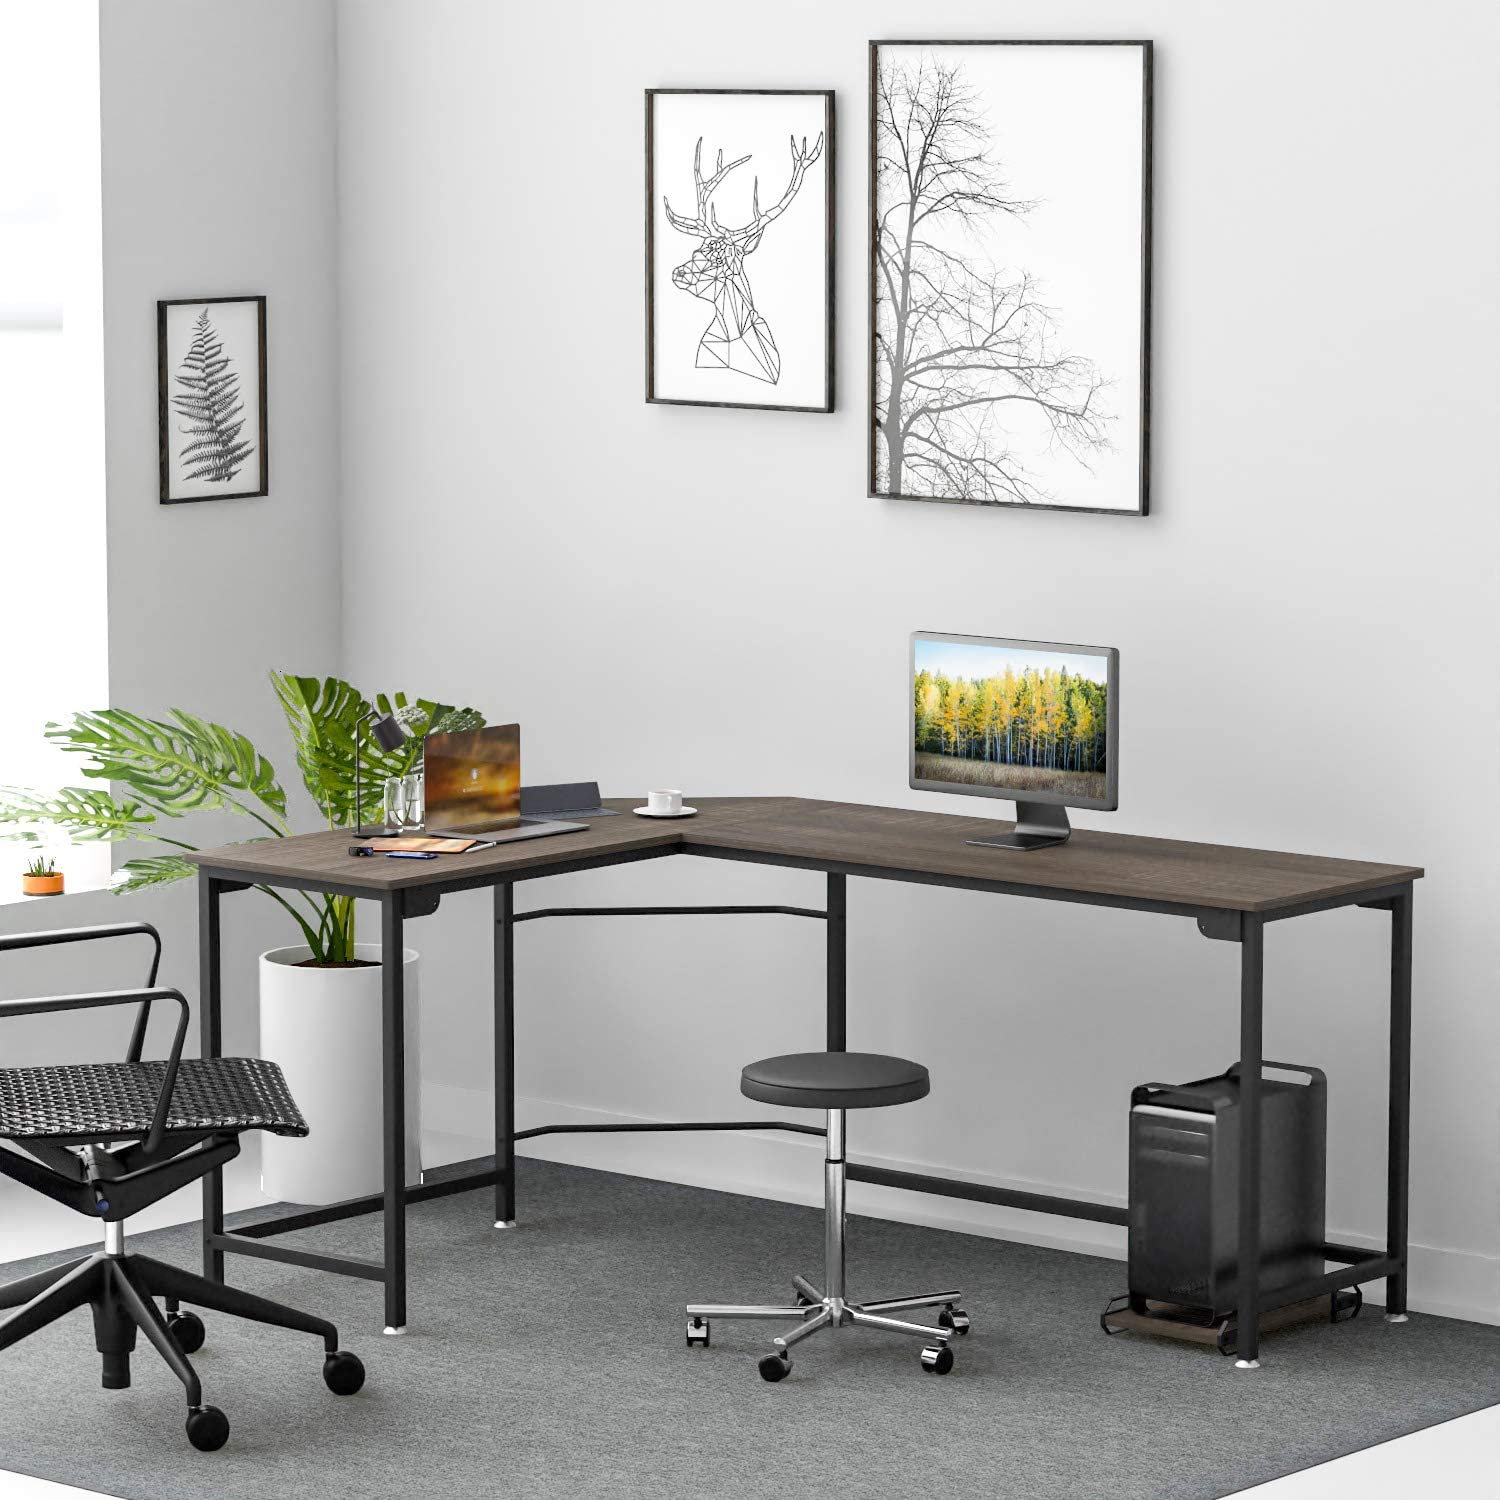 Guide To Getting The Best Office Desks And Chairs In 2021 – Welp Magazine